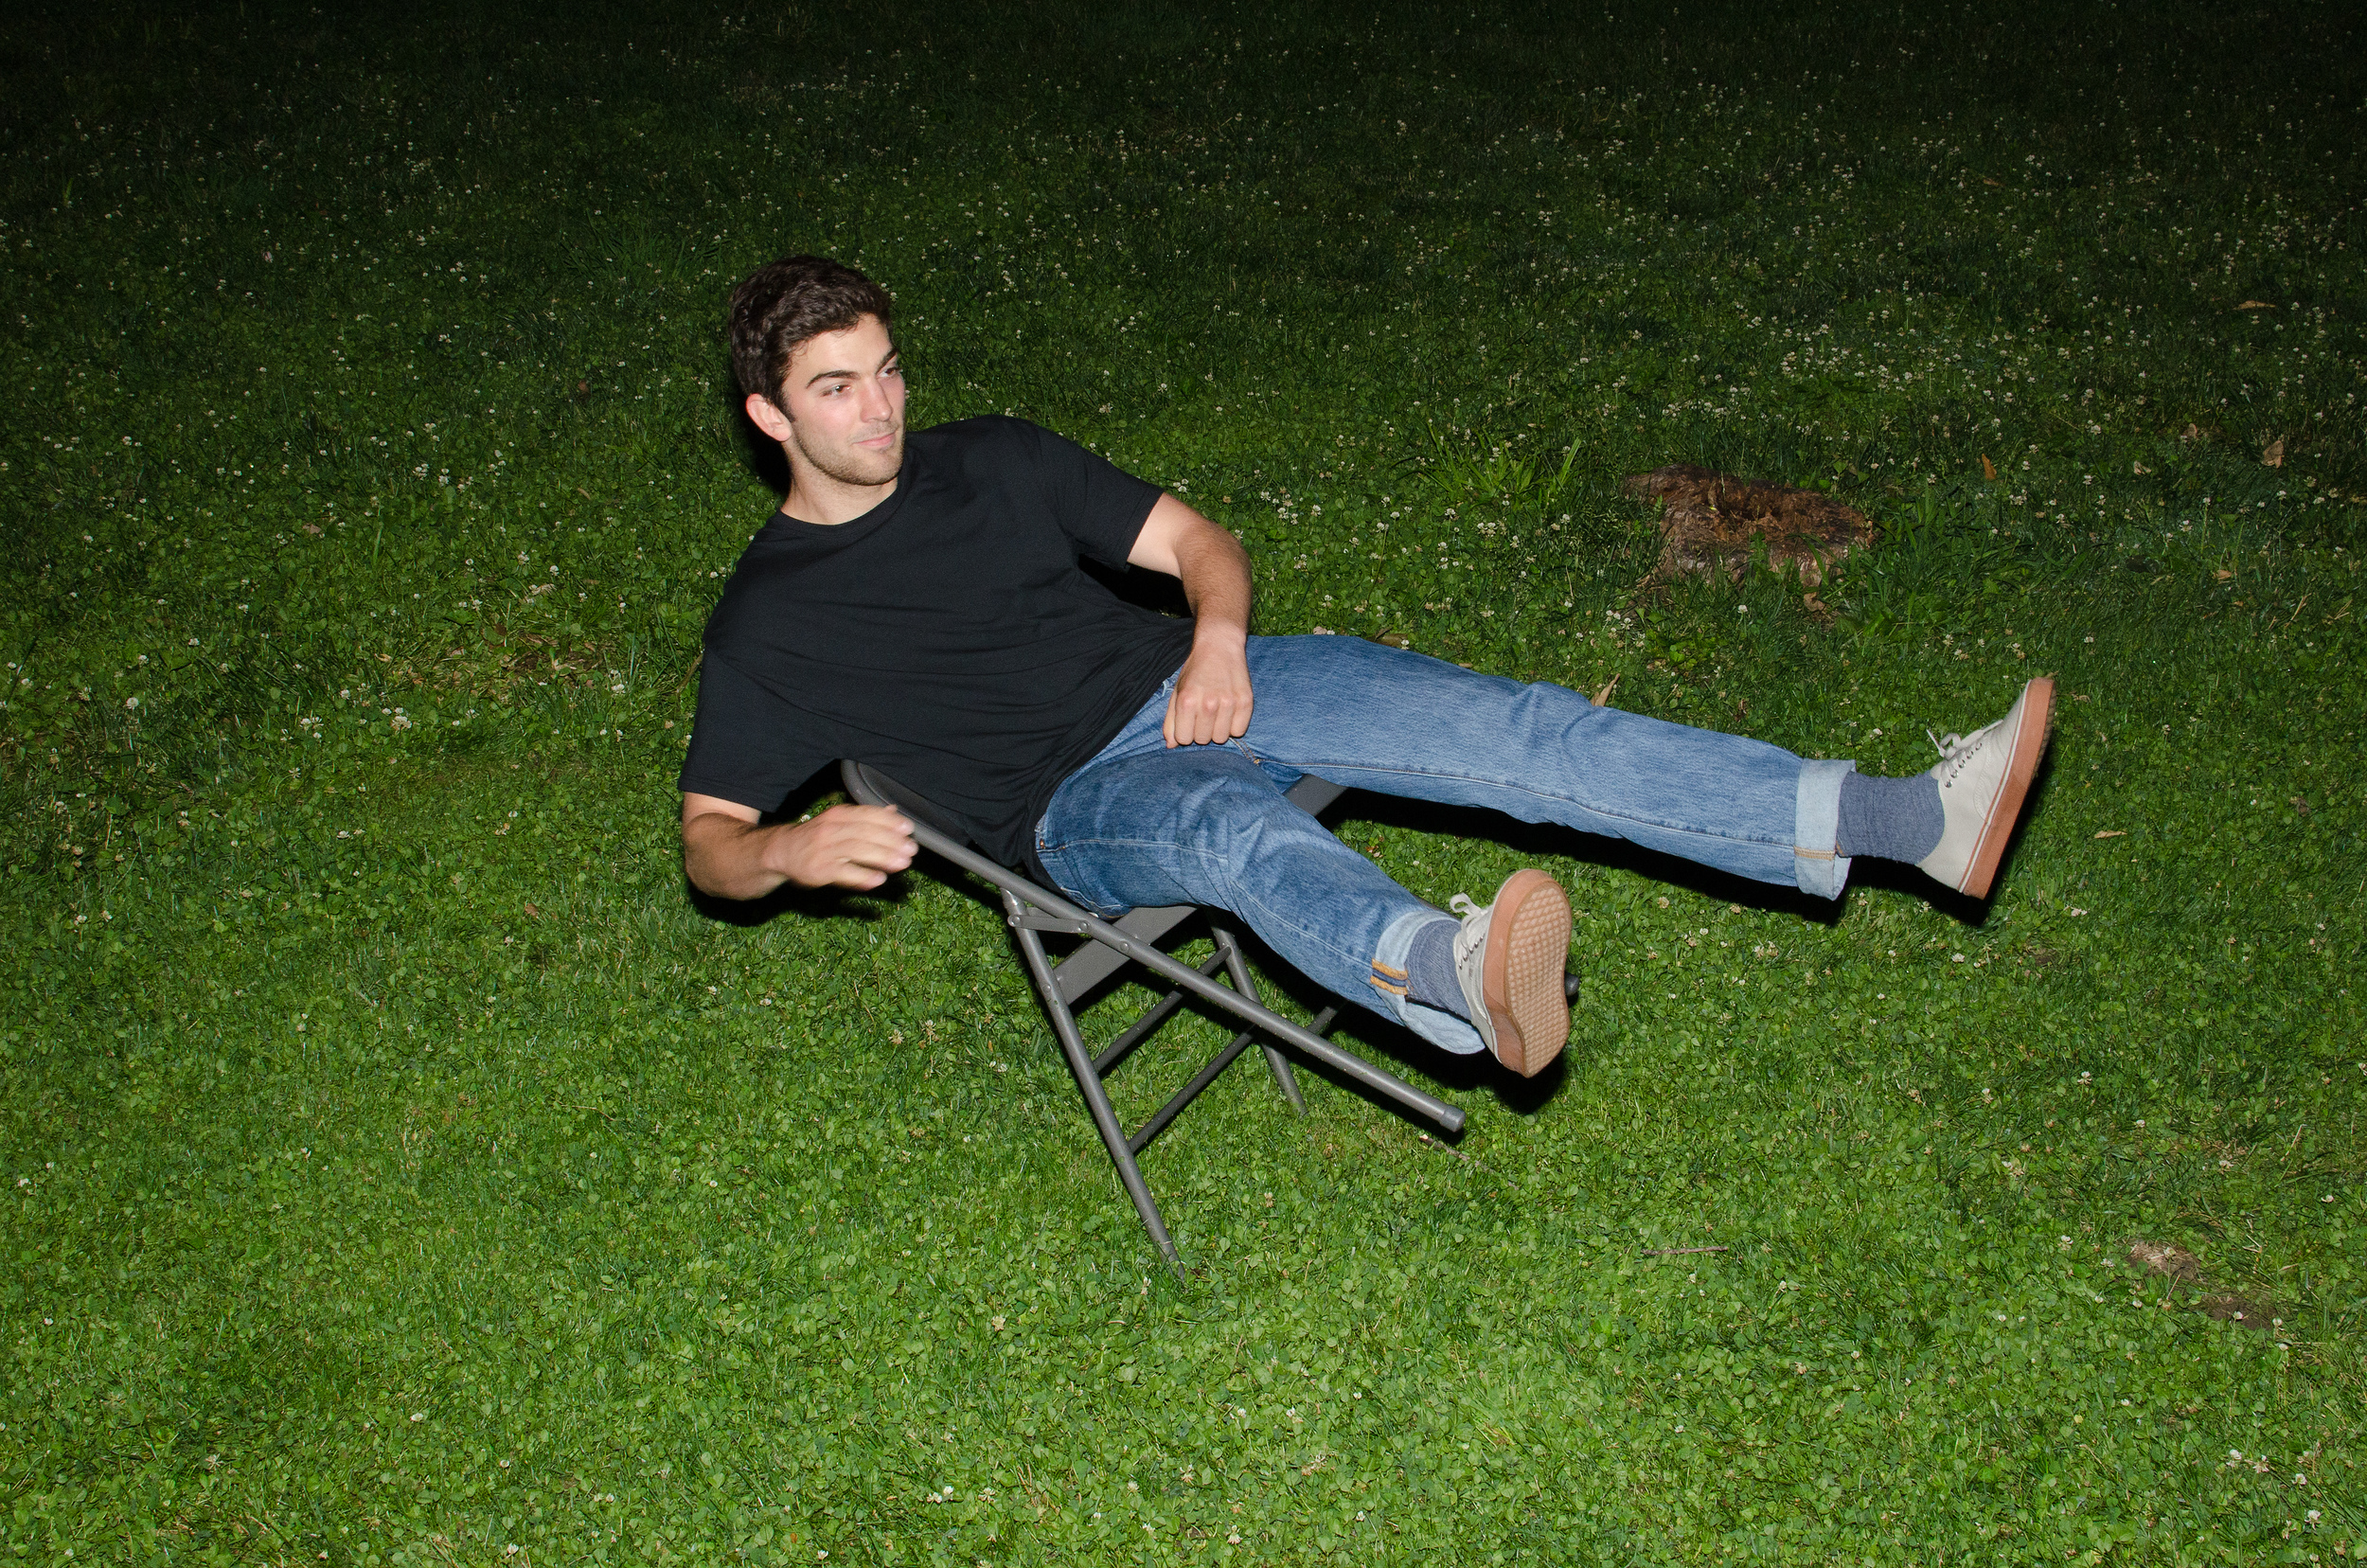 max tipping in chair.jpg